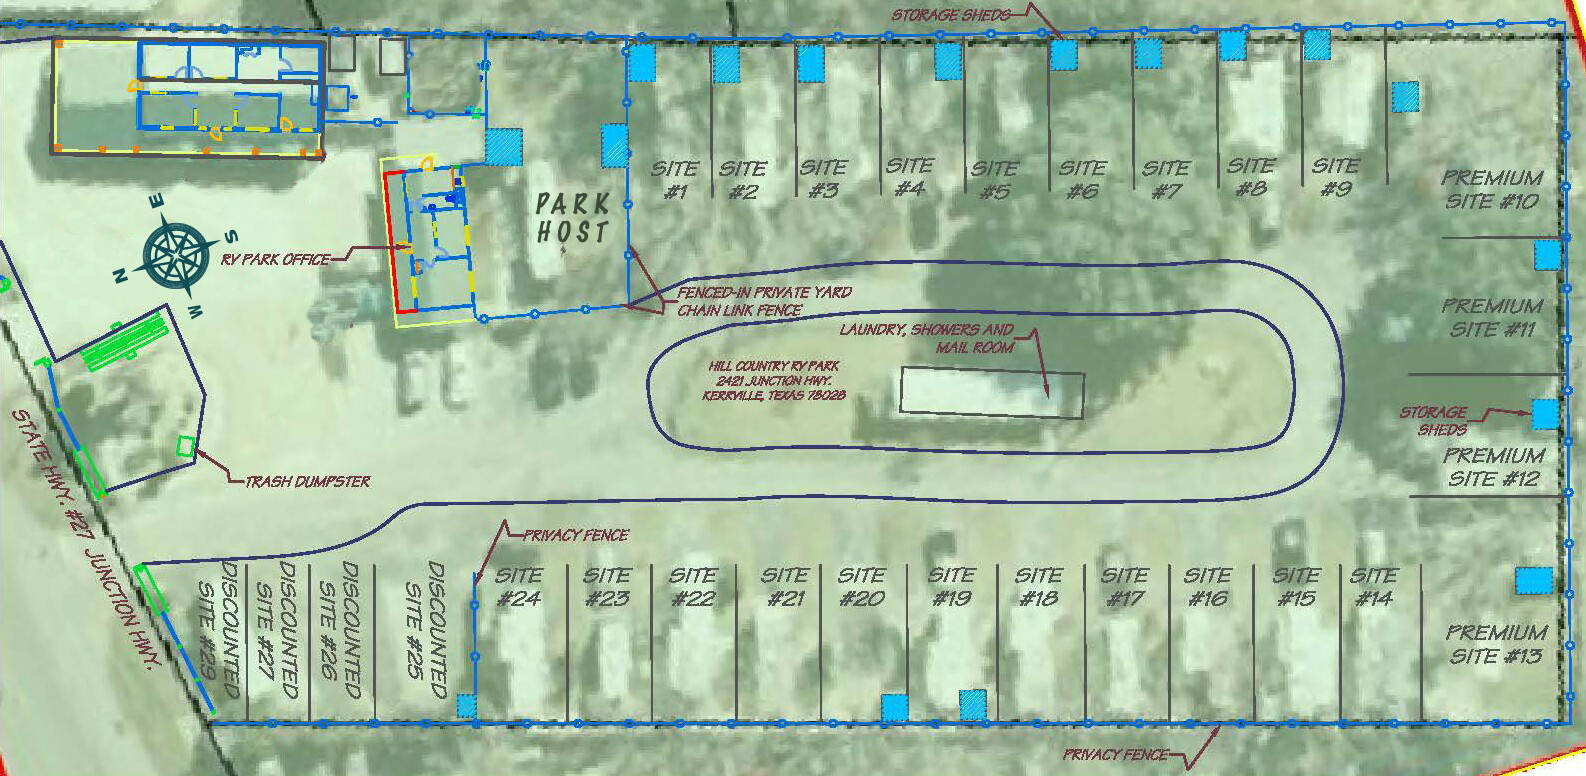 Site Map Layout Of The RV Park